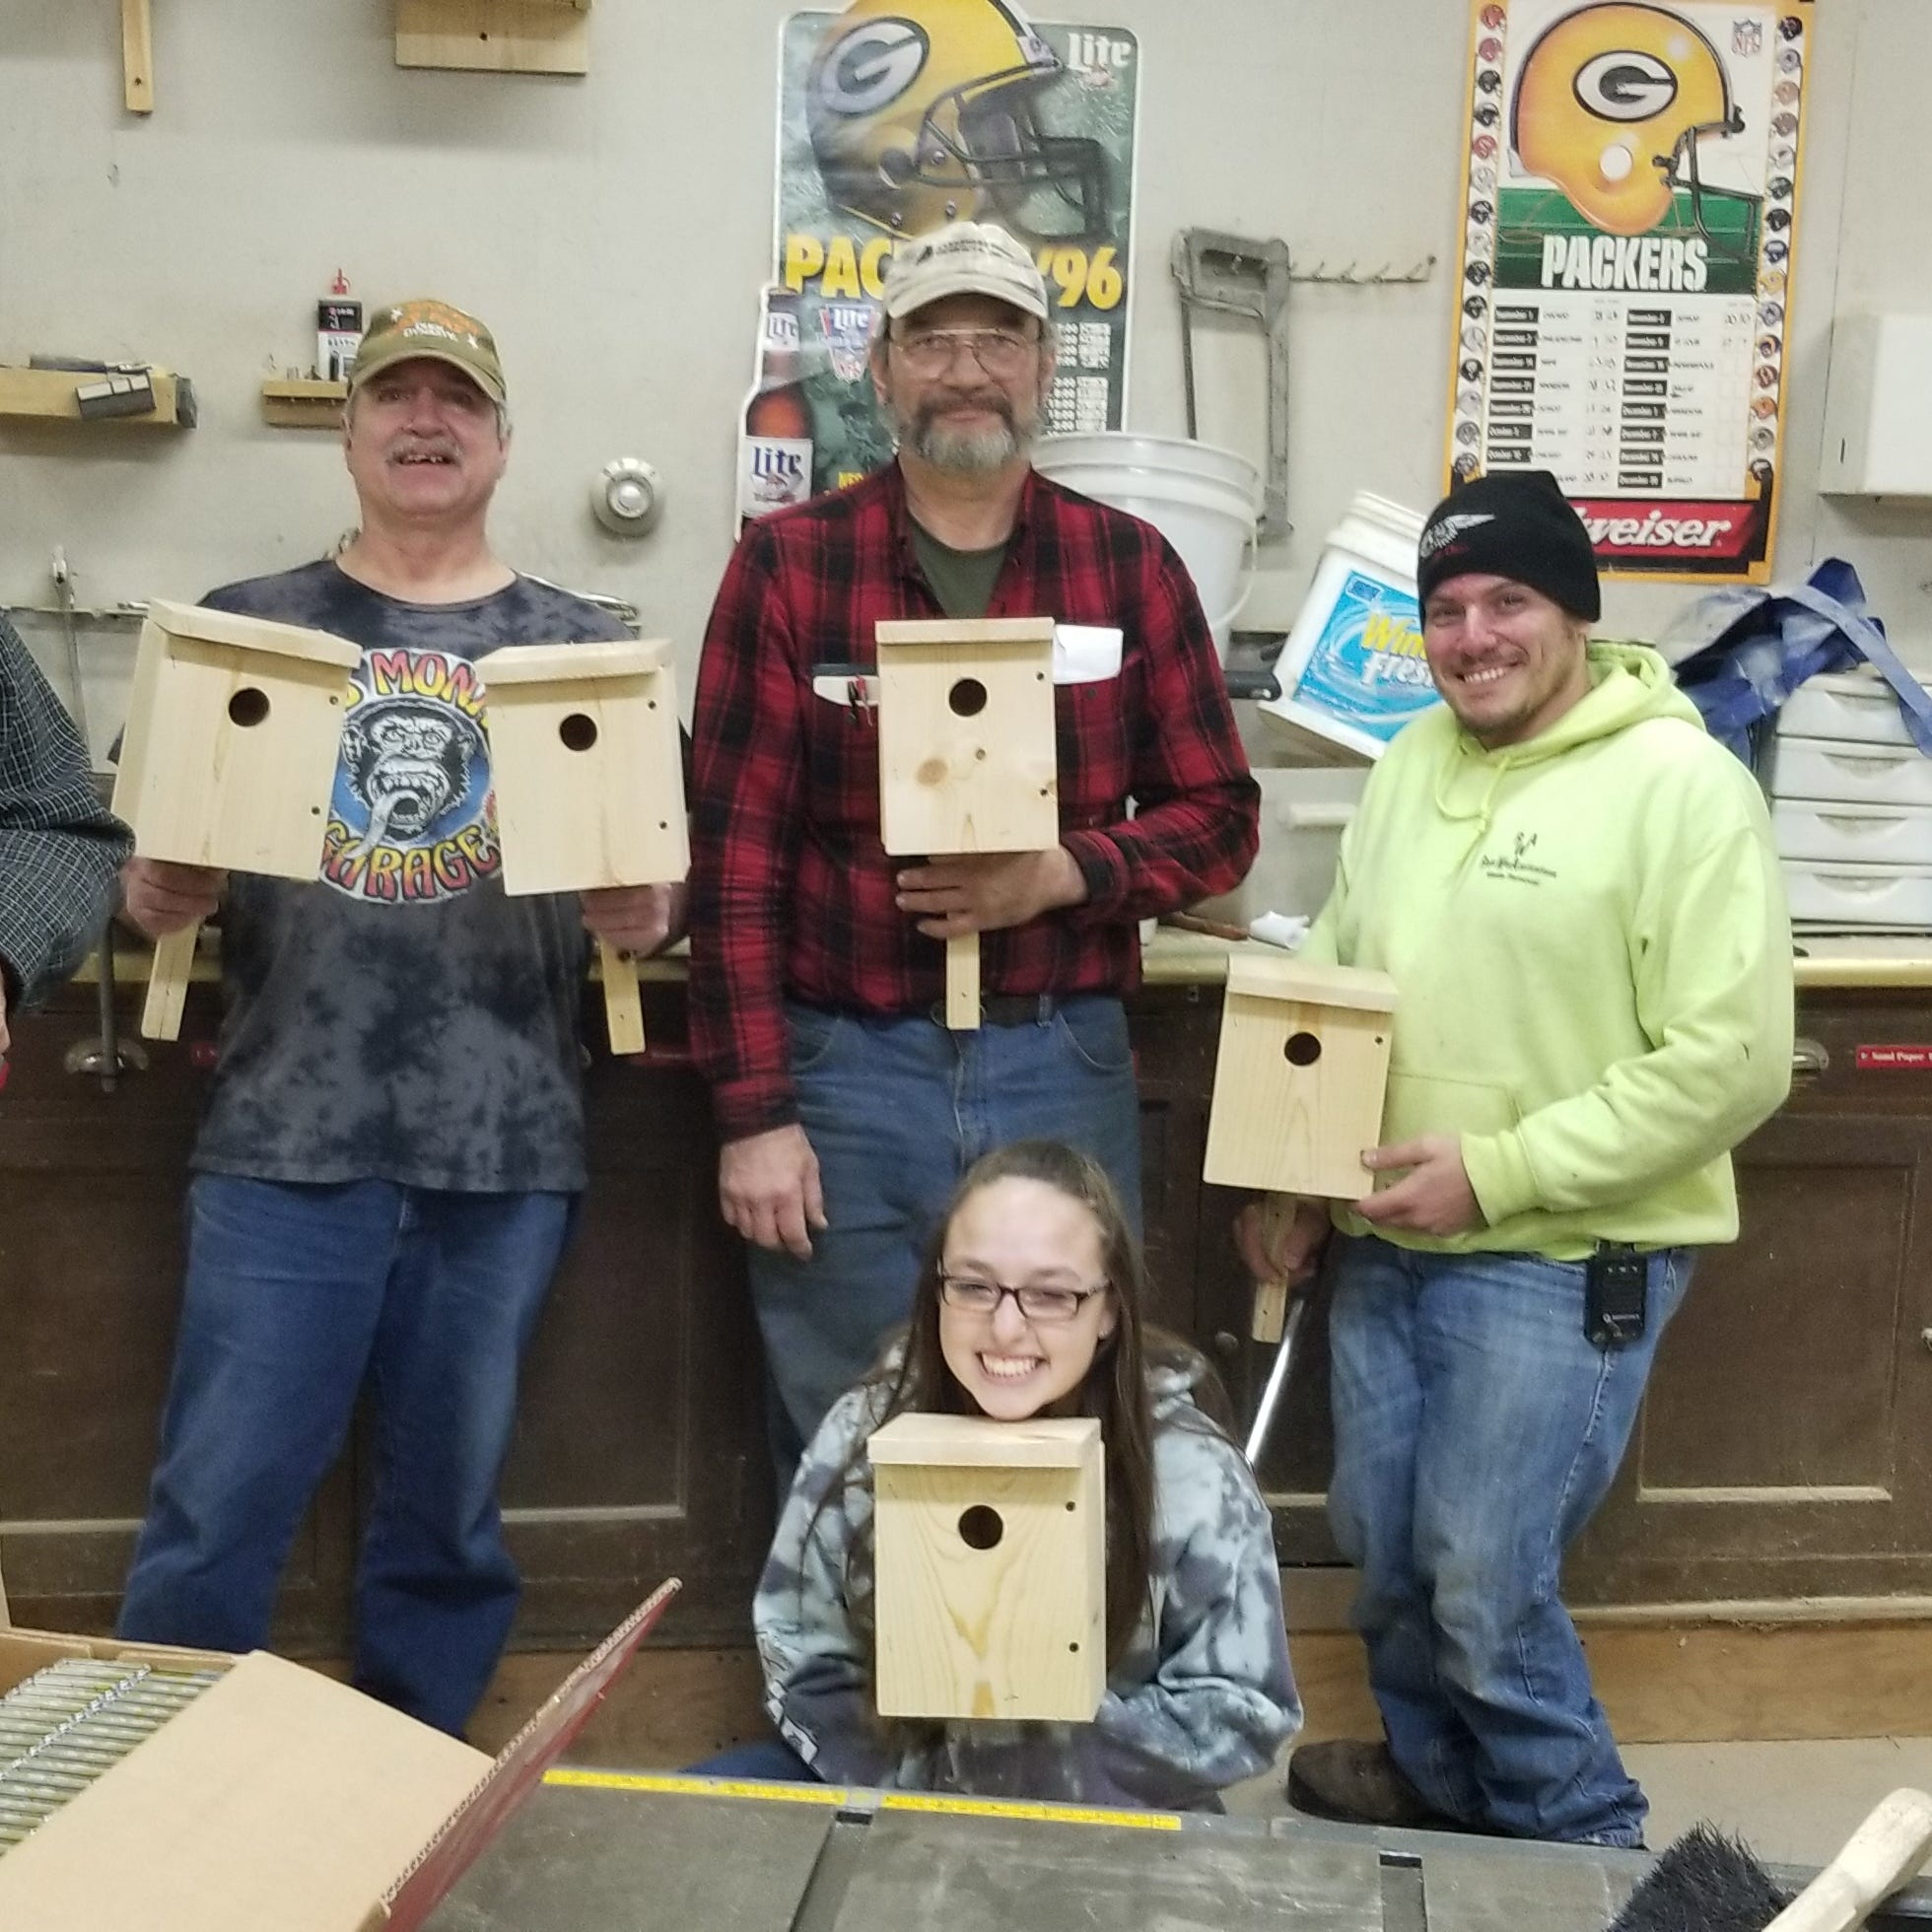 Manitowoc outdoors news: Wood duck, bluebird houses available from sportsmen's clubs